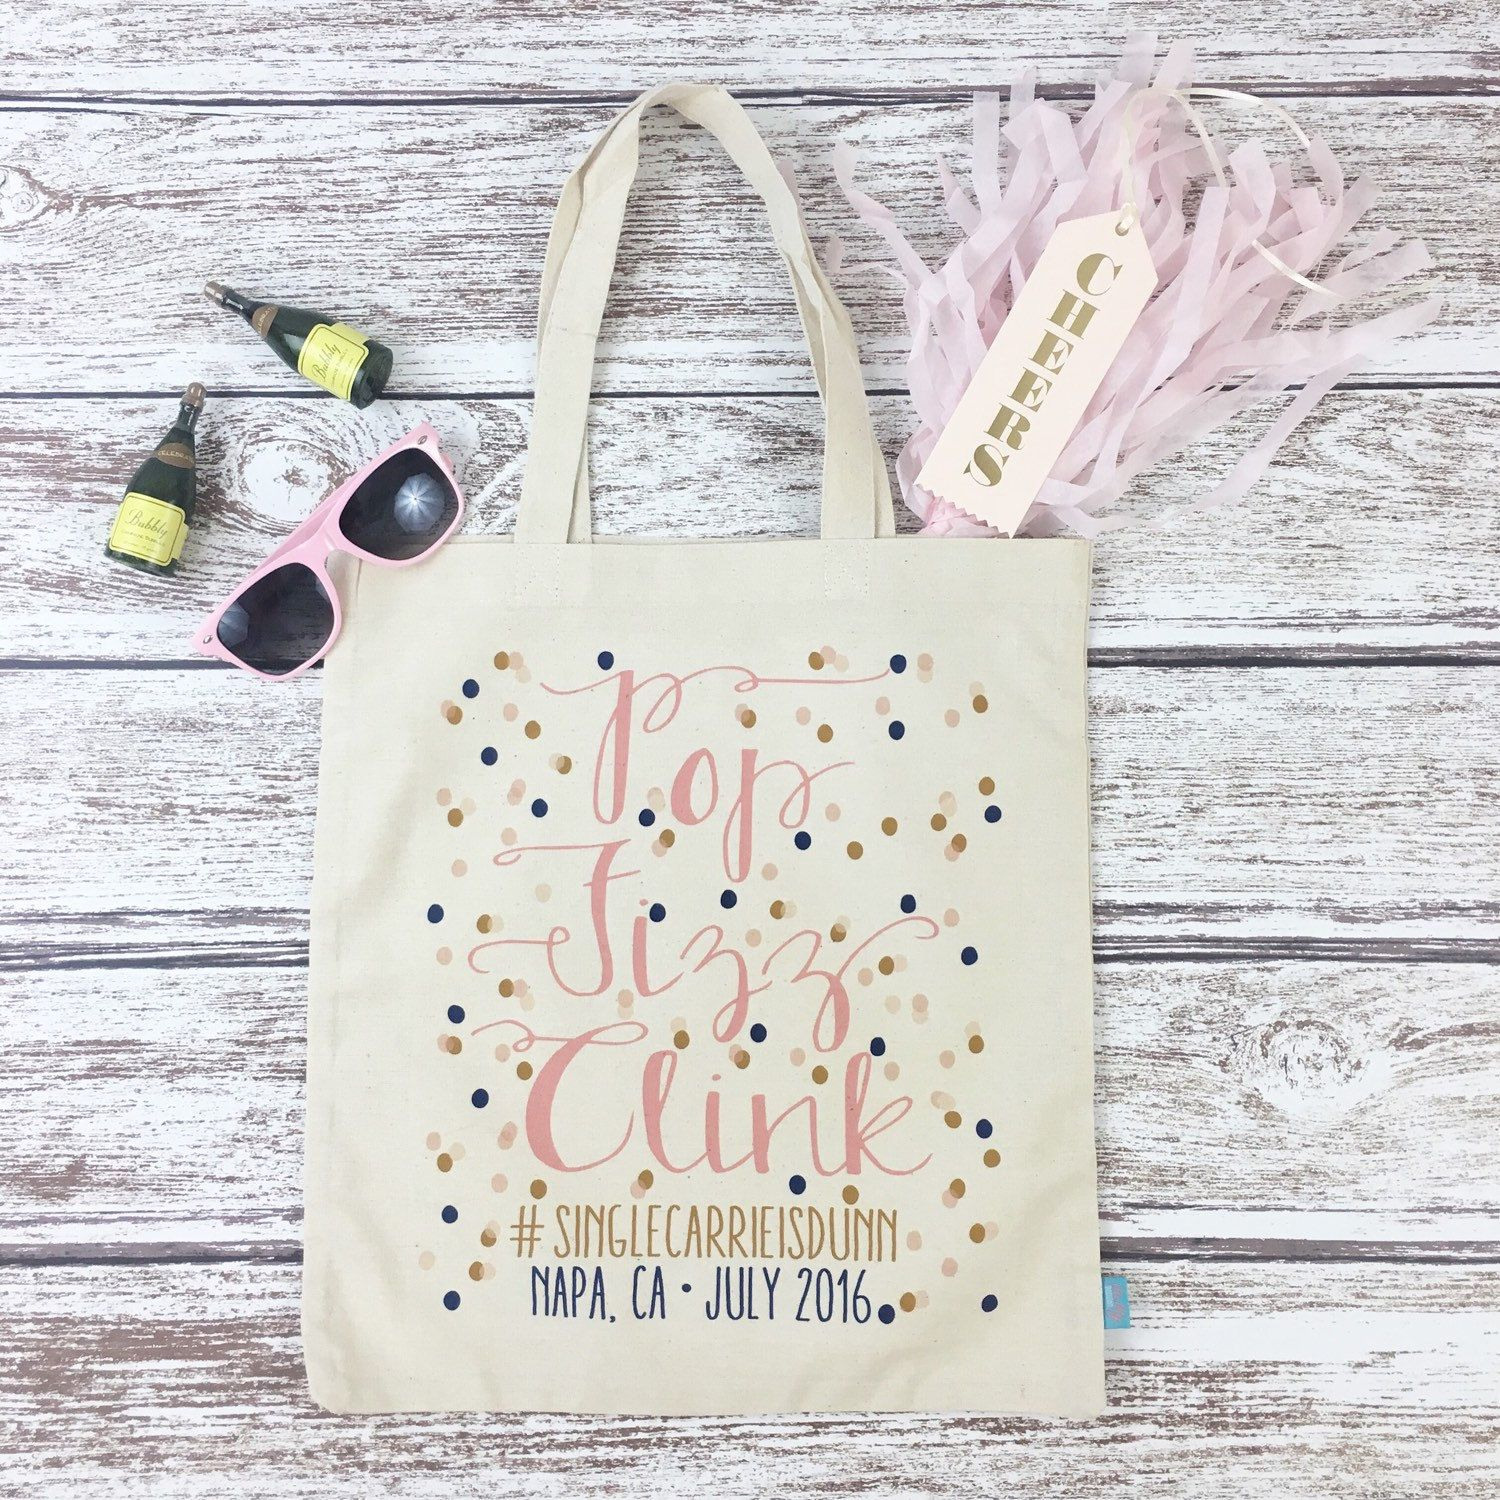 Pop Fizz Clink Confetti Hashtag Wedding Bachelorette Totes